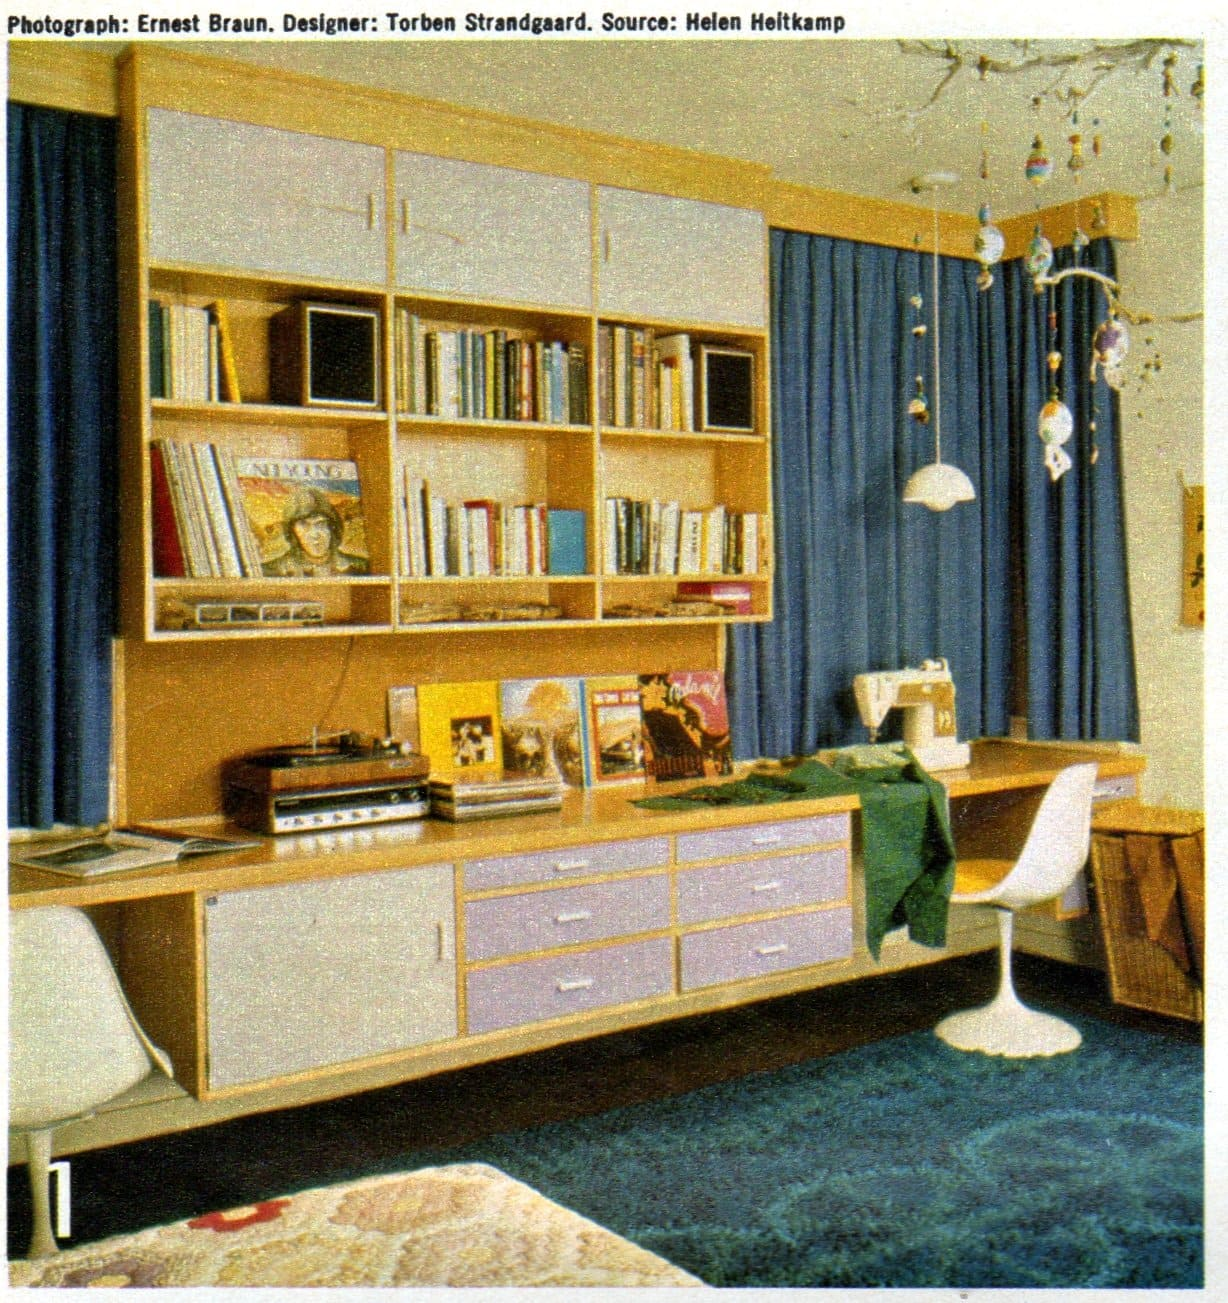 Creative bedroom decor ideas for kids from 1972 (3)